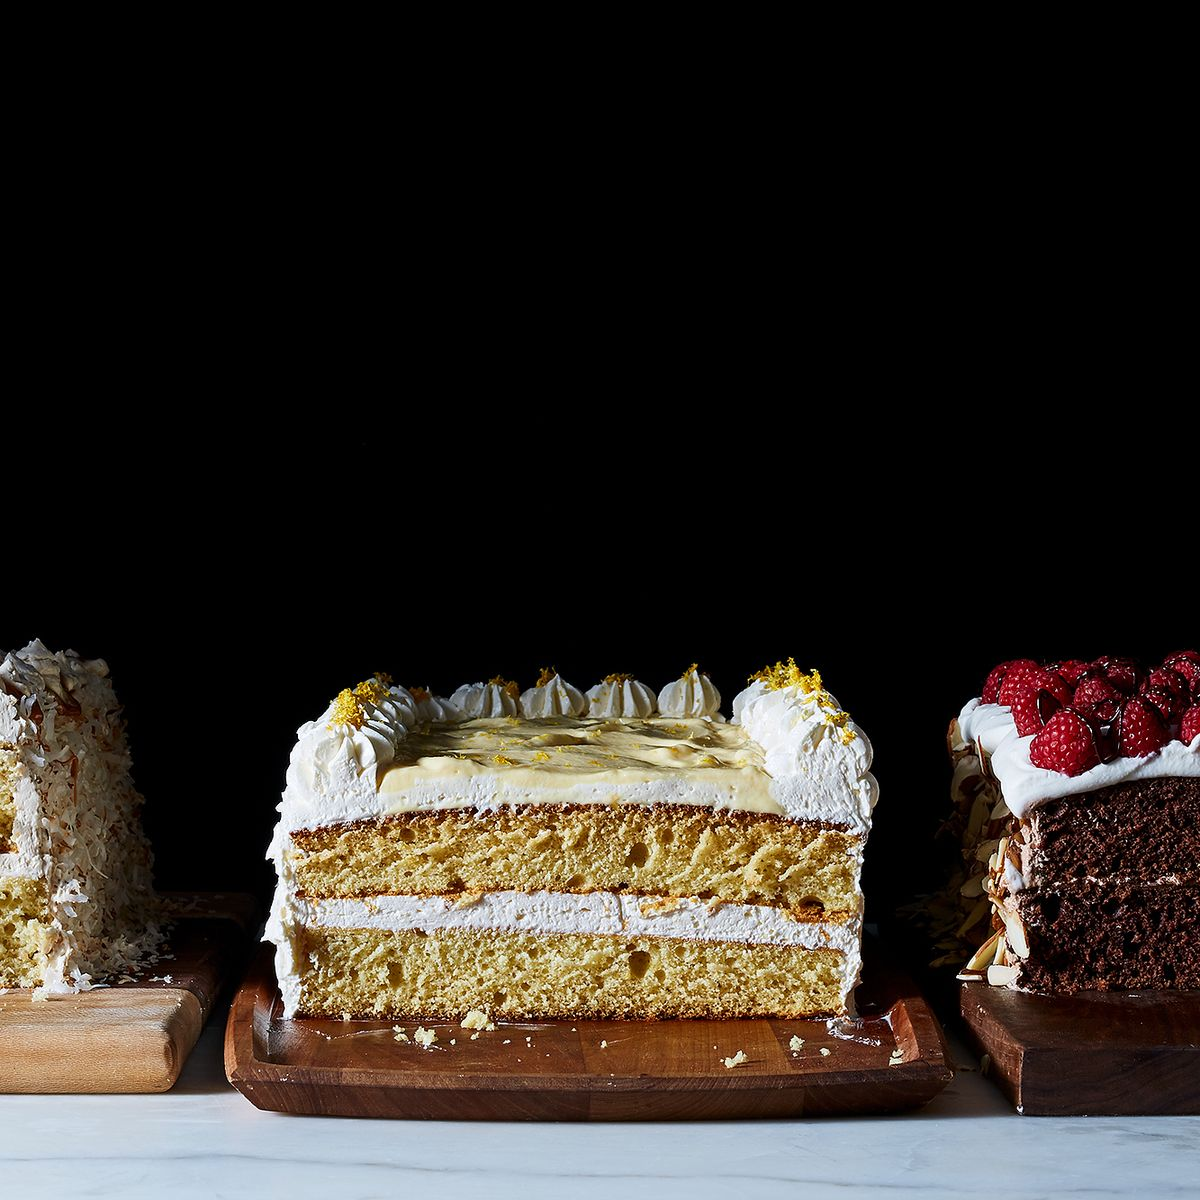 How To Make One Gorgeous Layer Cakeusing One Sheet Pan